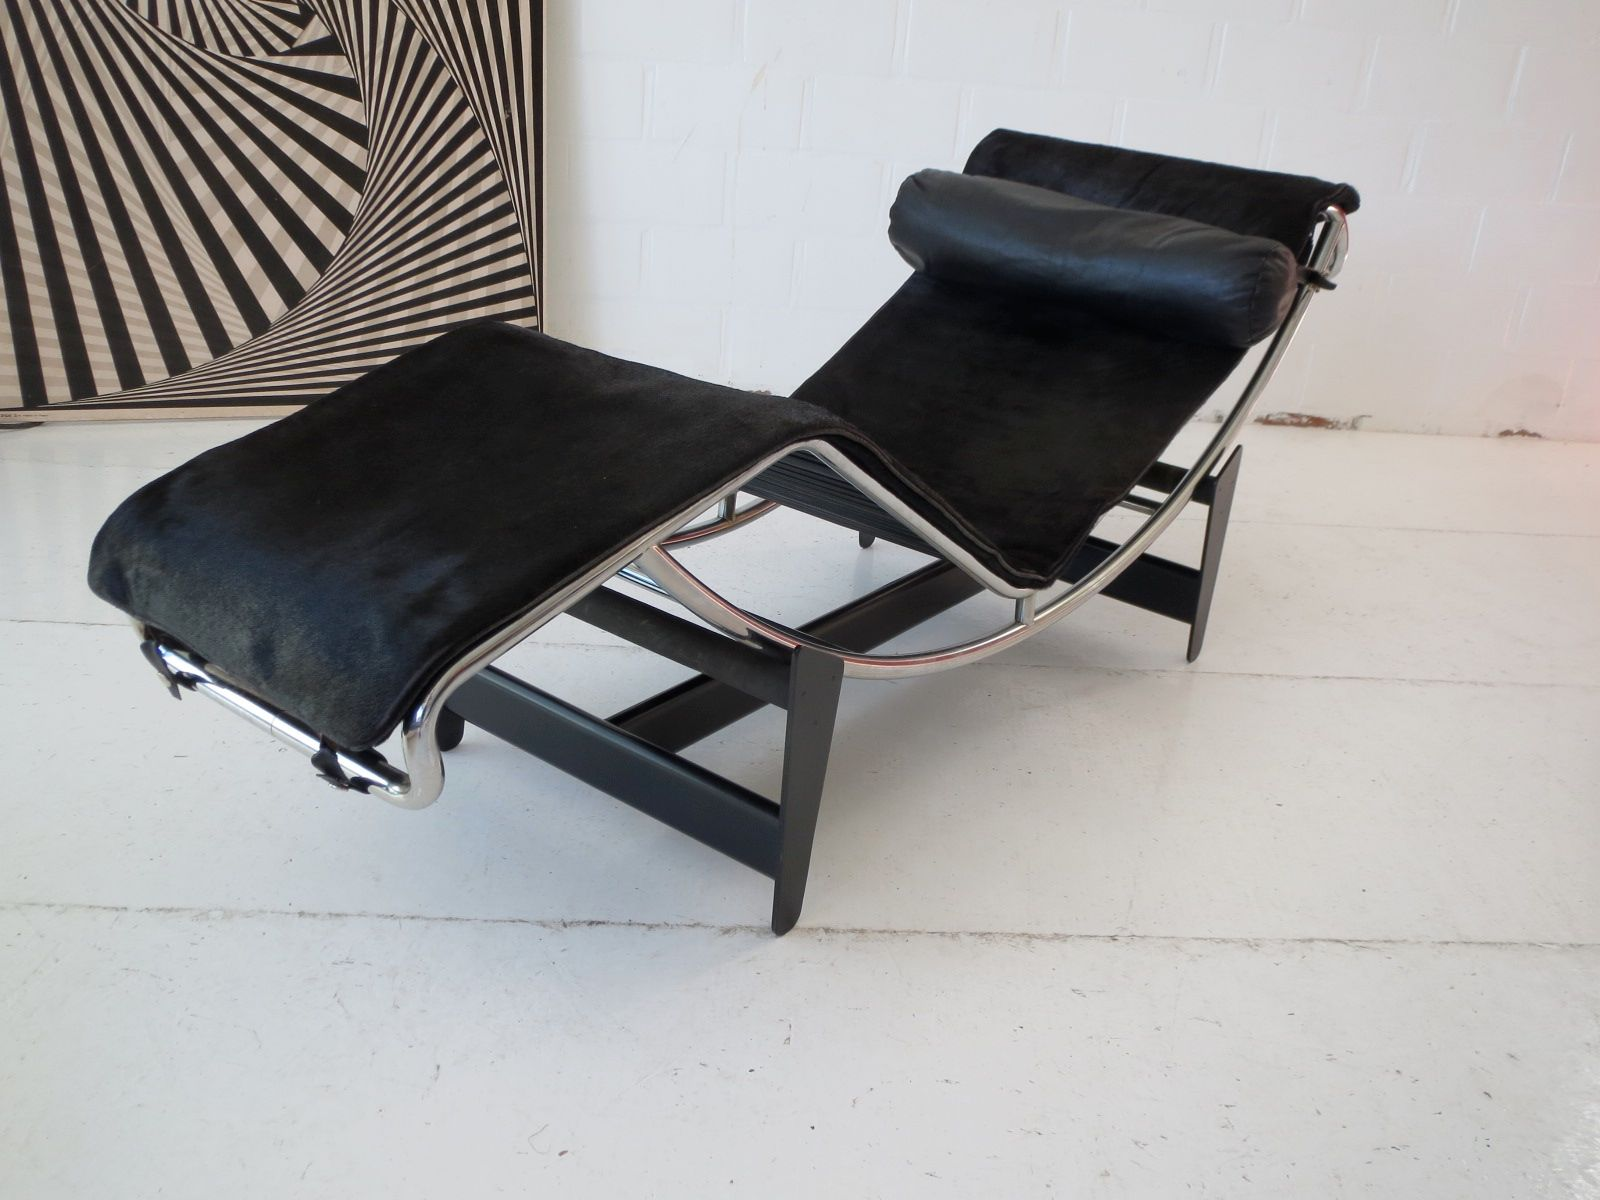 Early under 750 numbered lc4 chaise longue by le for Chaise lounge corbusier